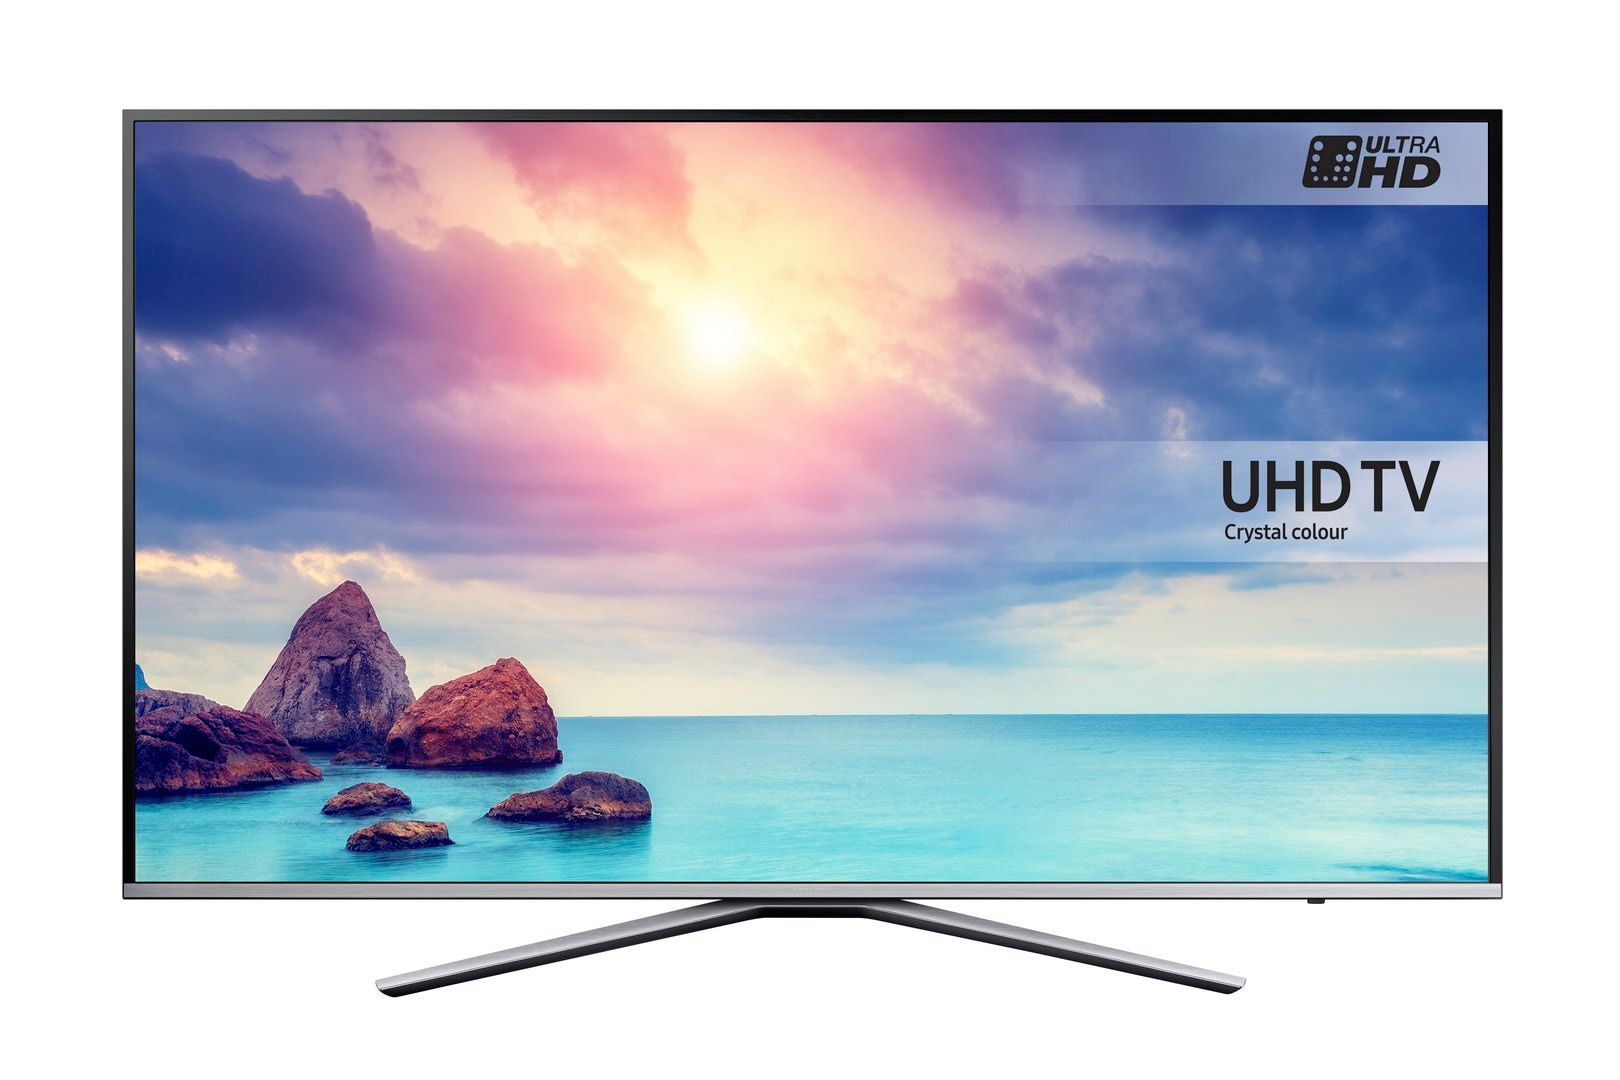 6-Series Crystal Color UHD TV UE40KU6400